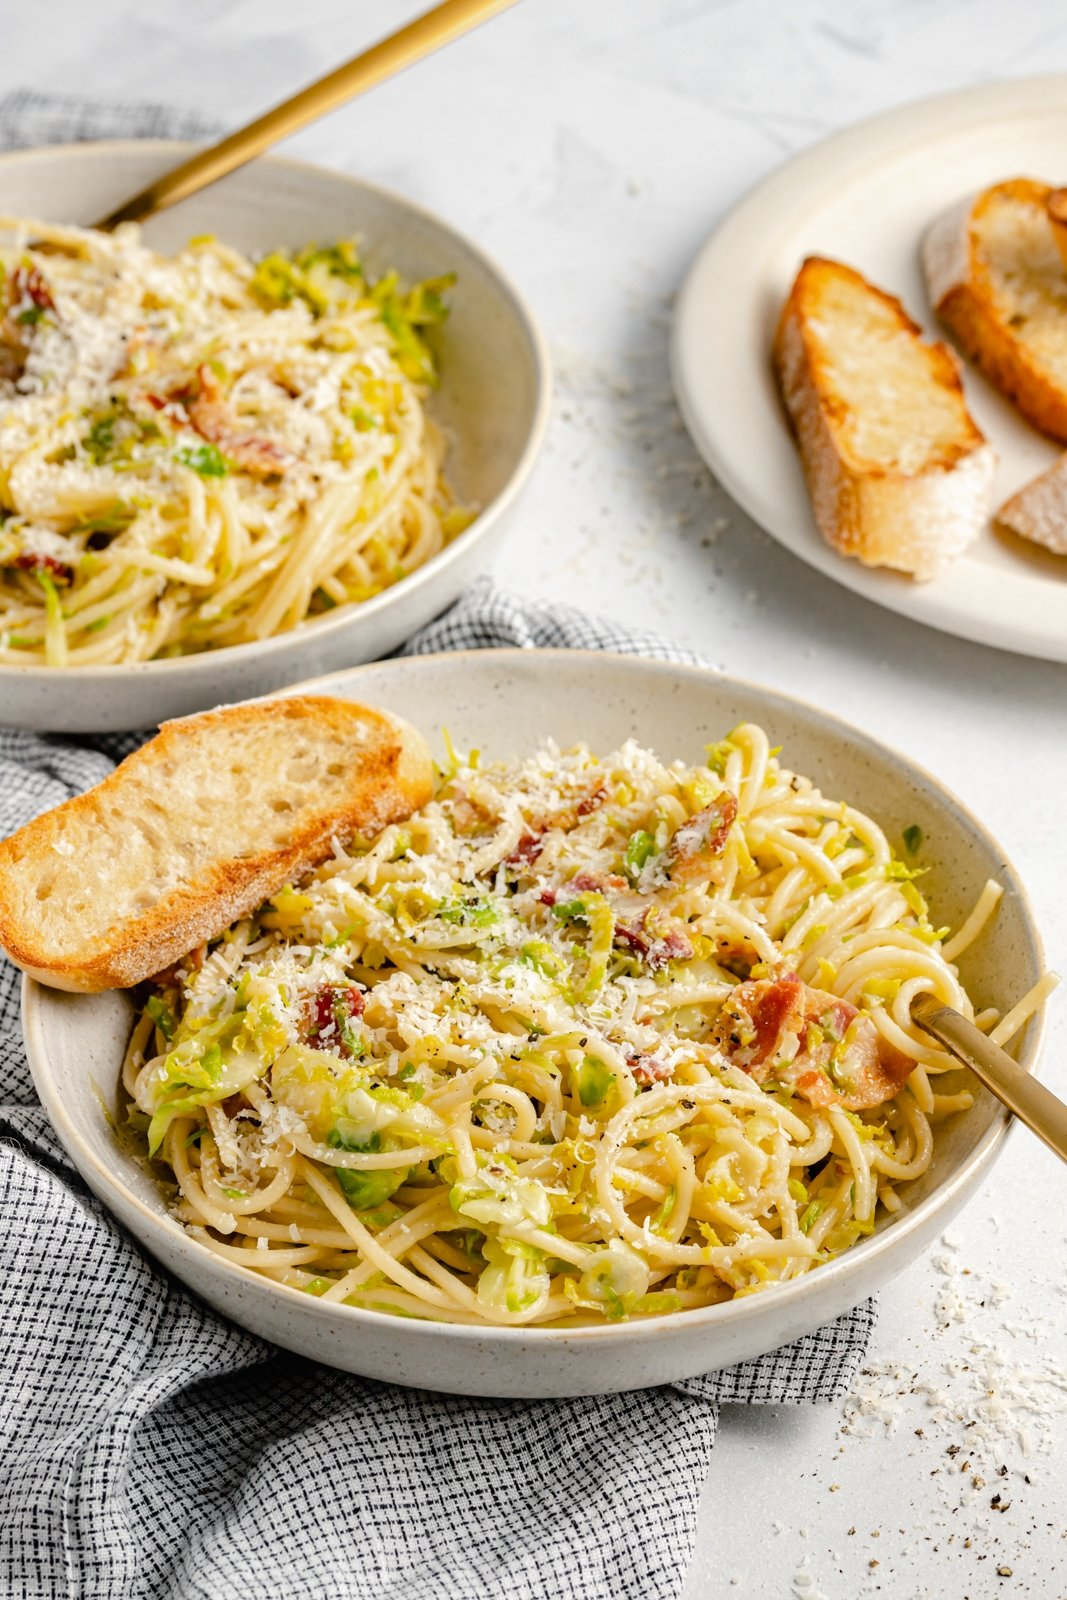 brussels sprouts spaghetti in a bowl with a slice of bread